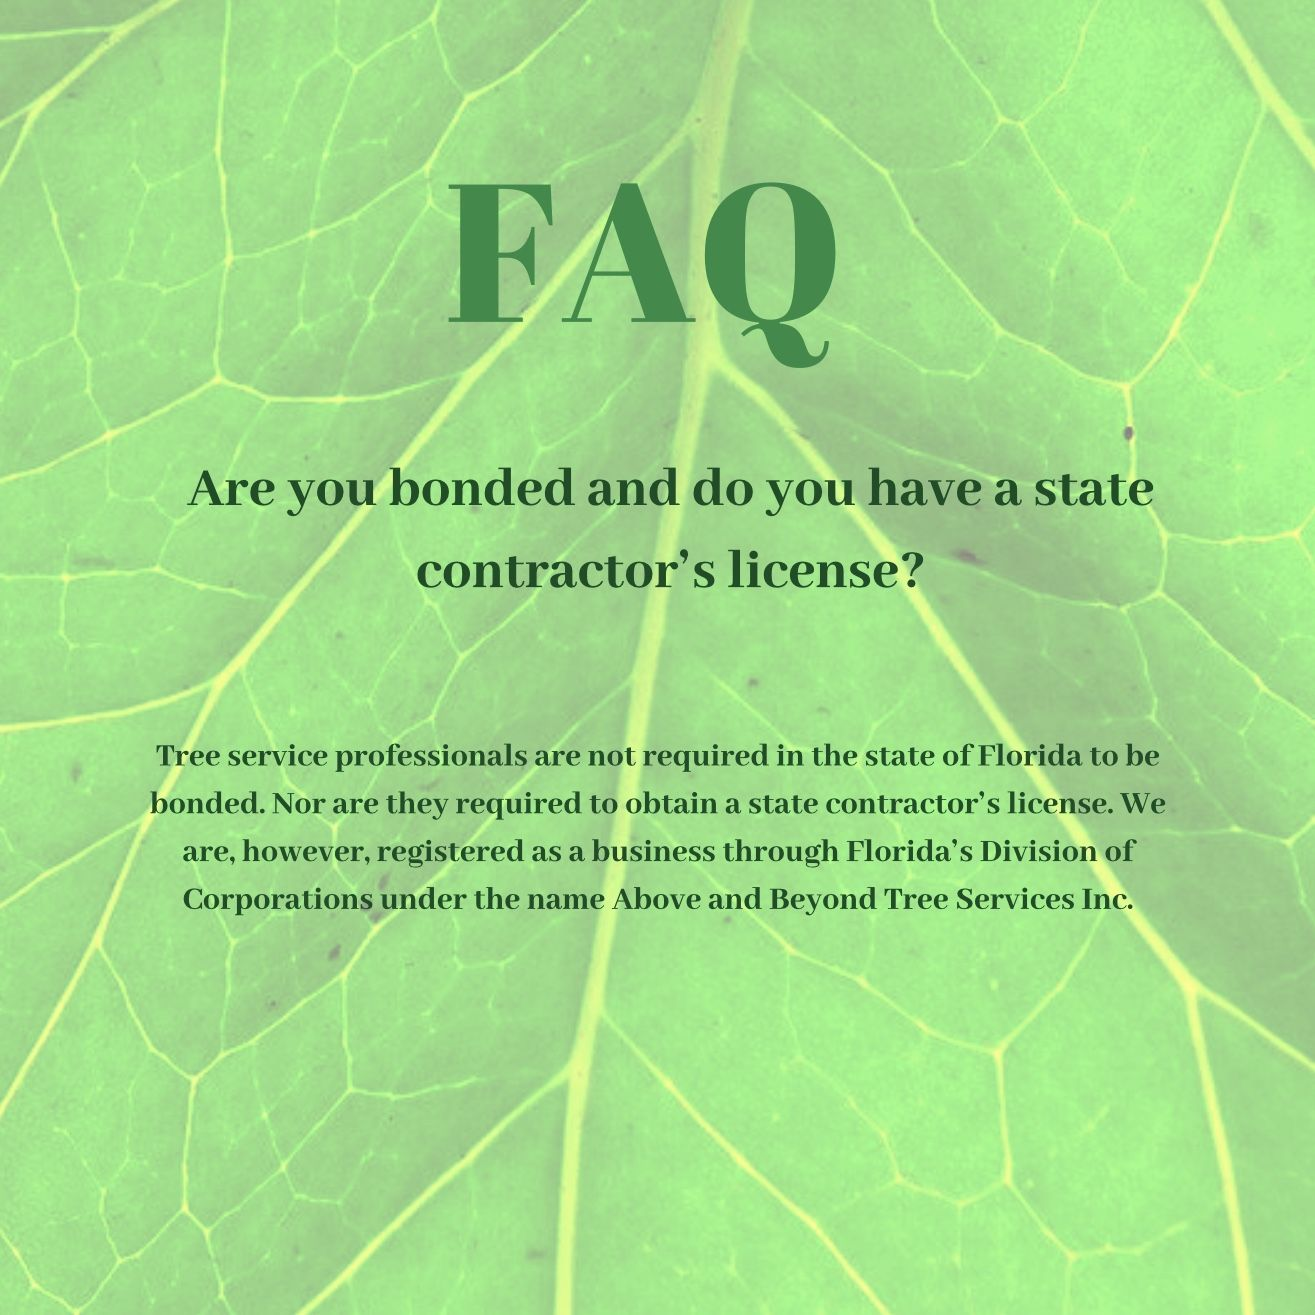 Check out our frequently asked questions!